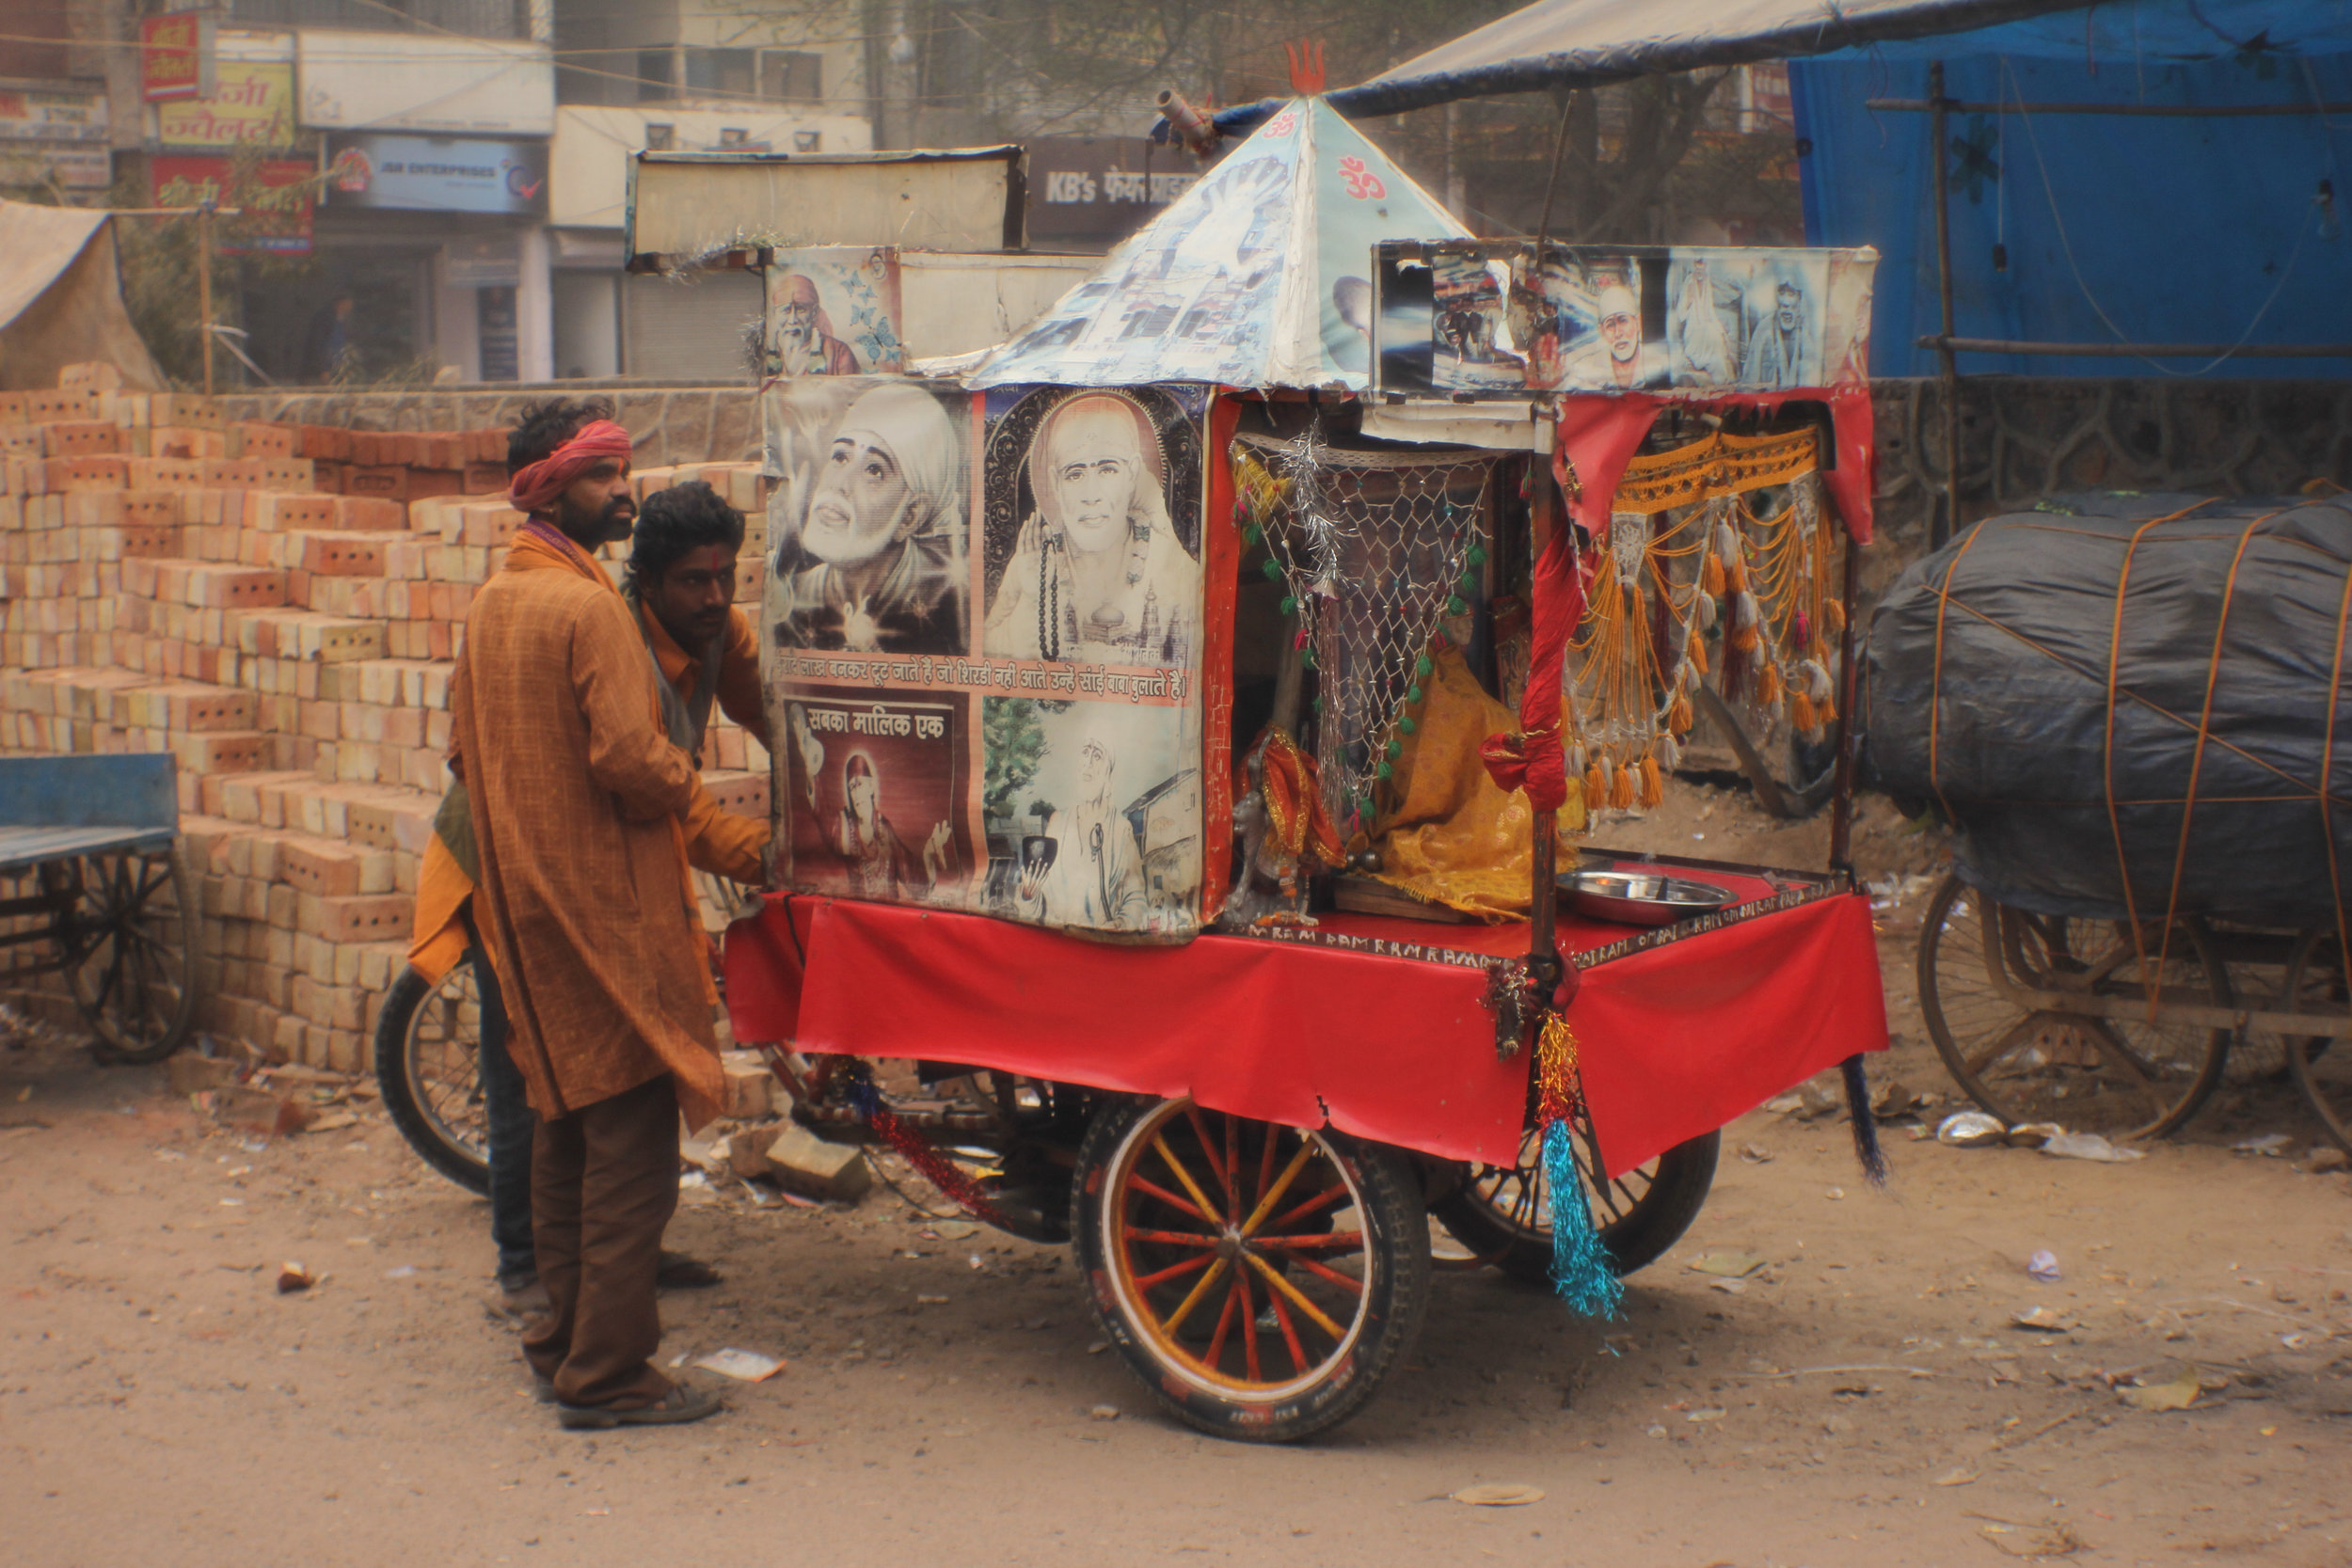 Toy vendor, Noida, Uttar Pradesh  Mobile temple, Tughlakabad Extension, New Delhi